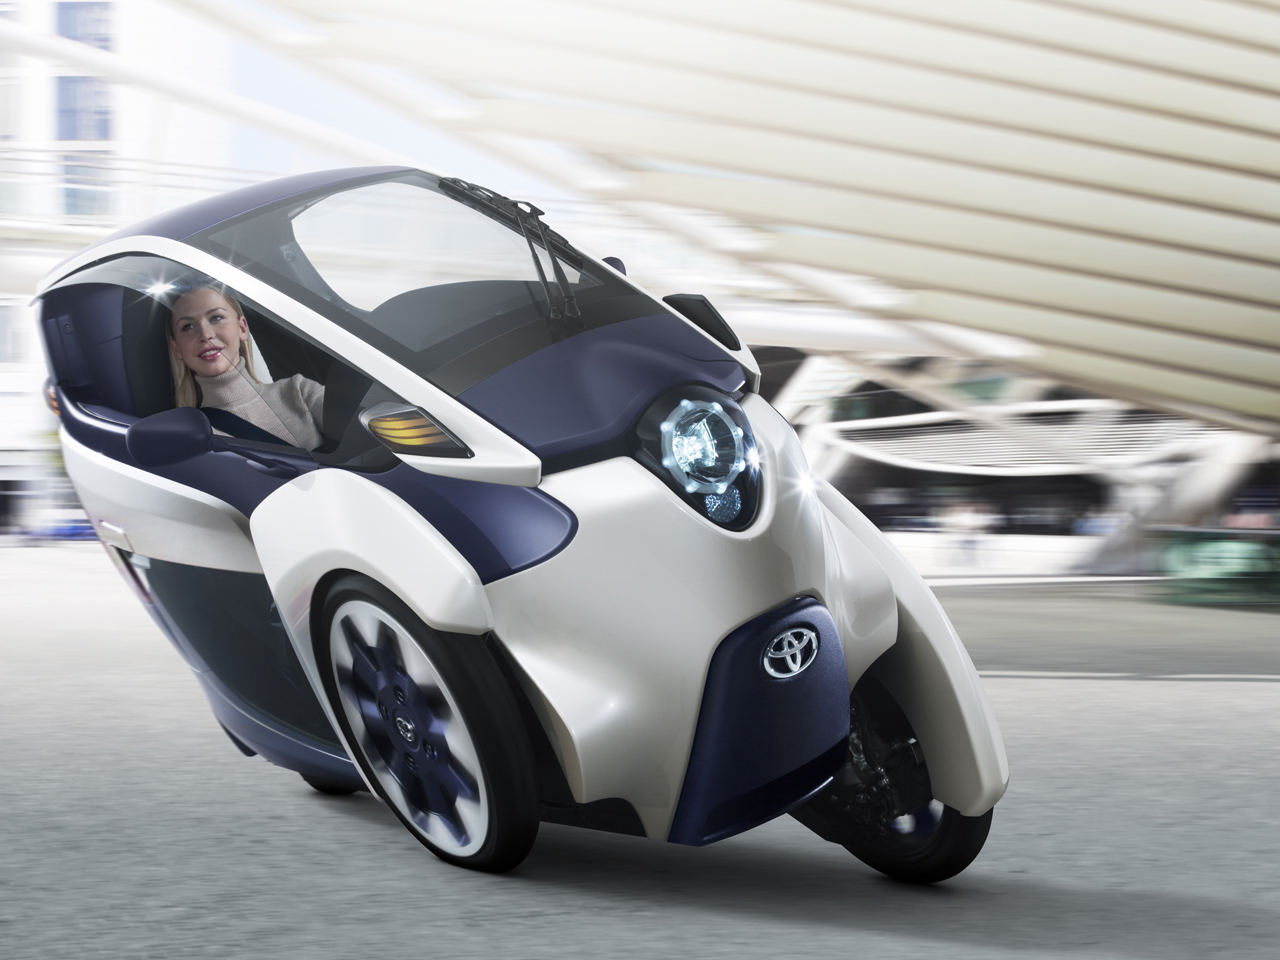 My Next Motorcycle Is A Toyota With Video